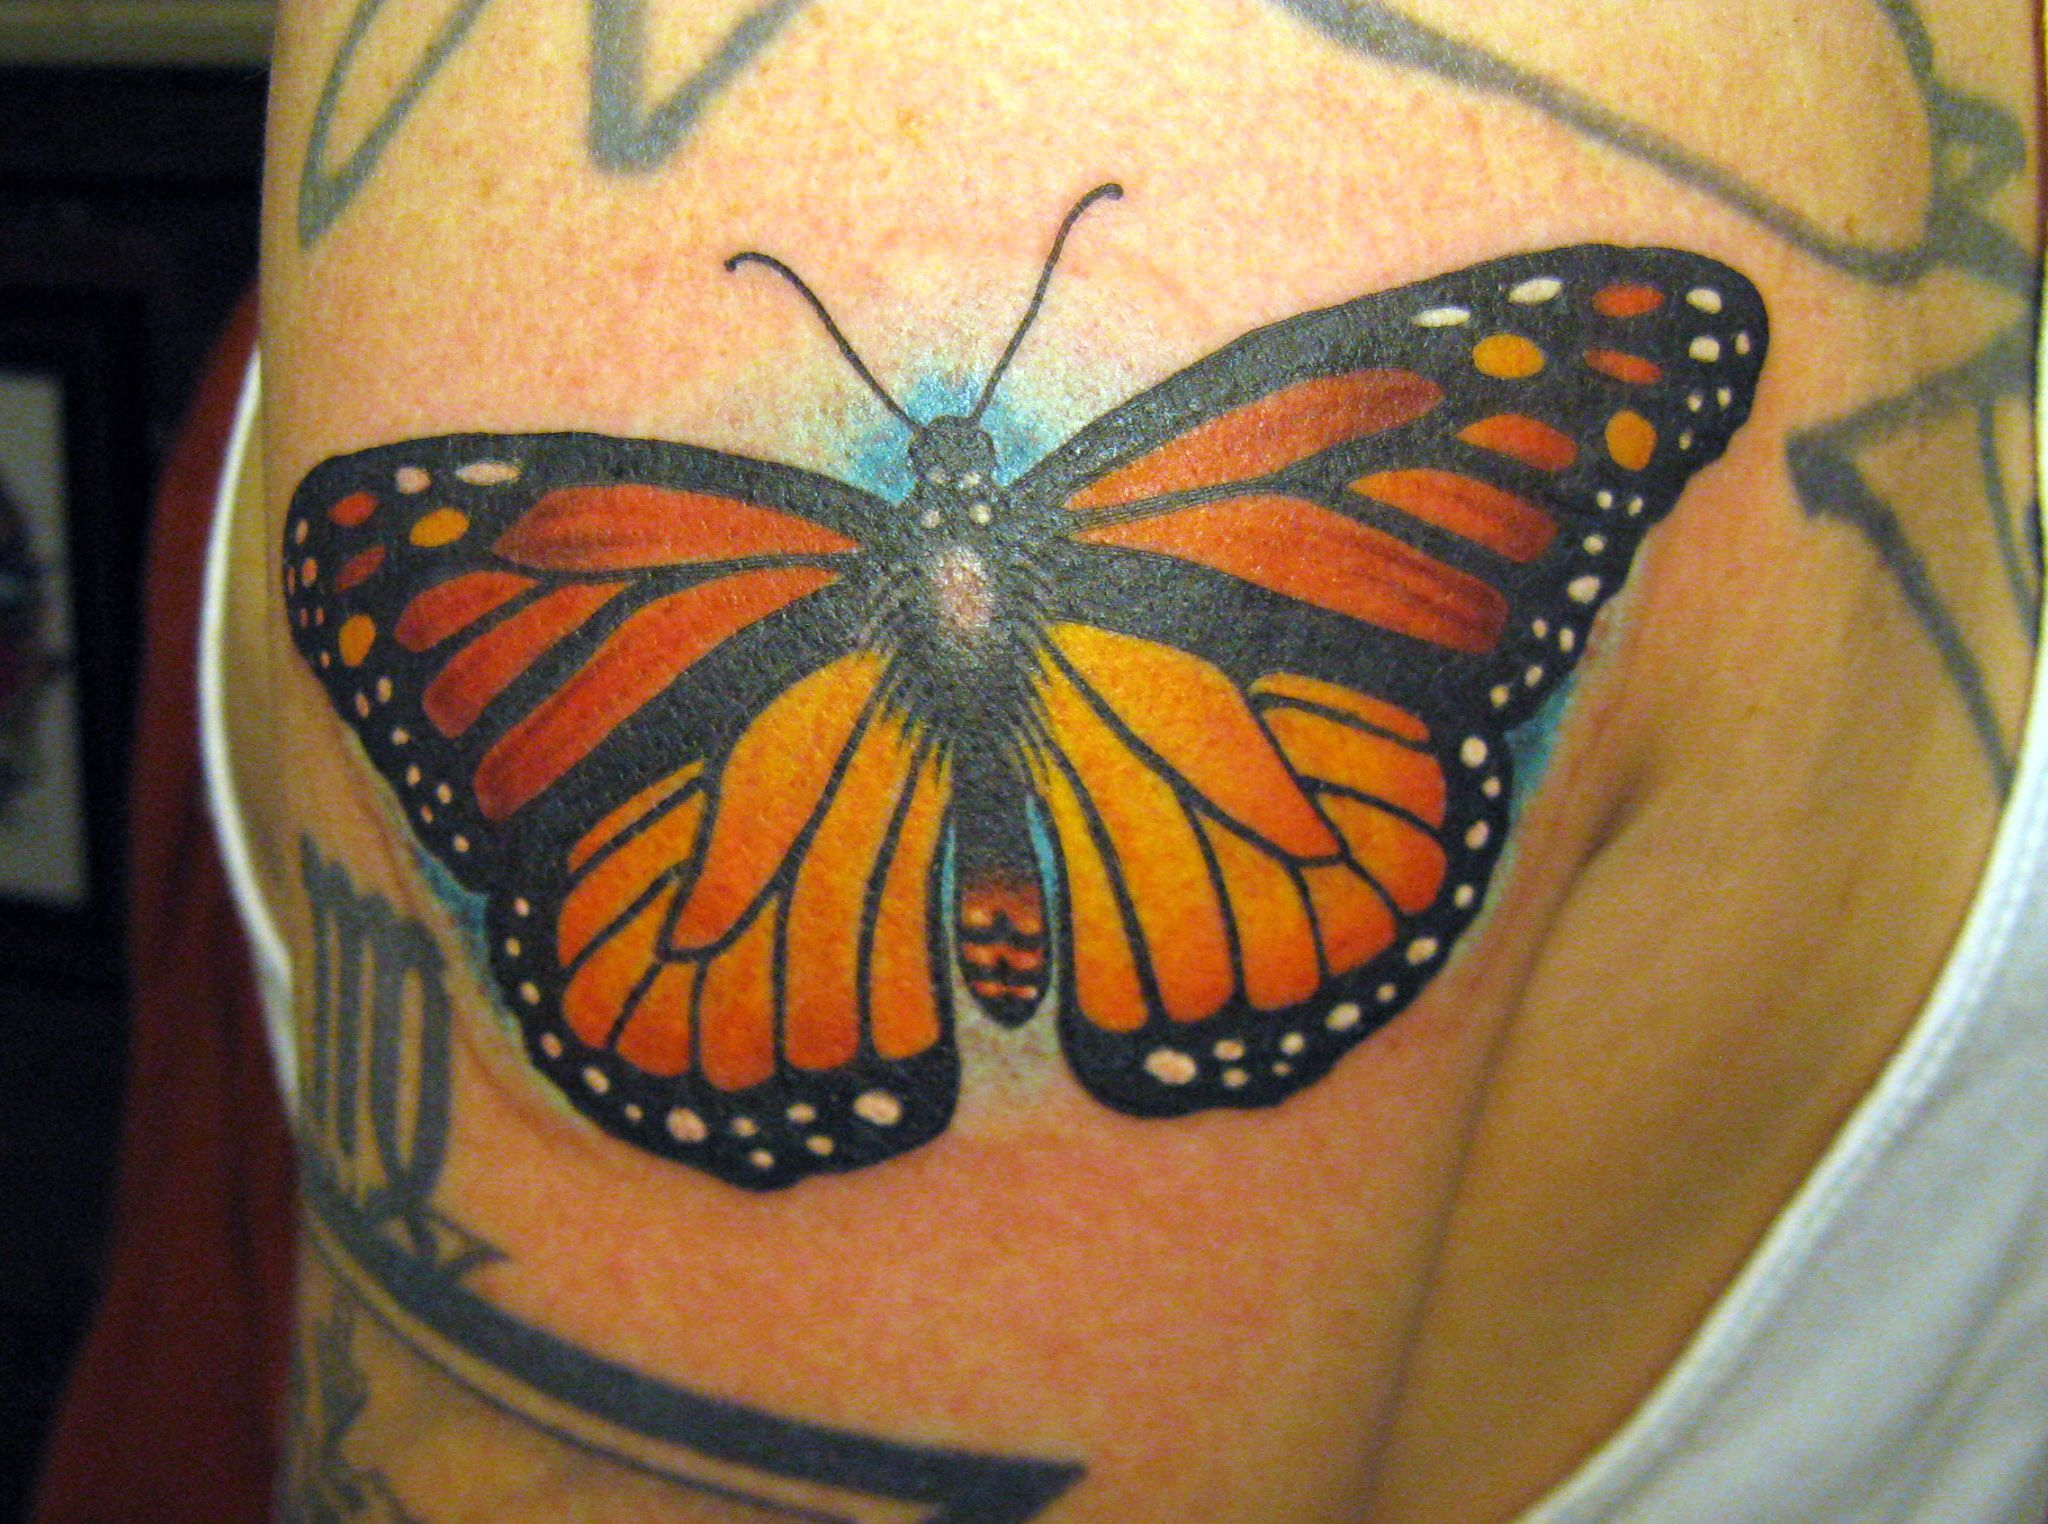 Monarch Butterfly Tattoo – The Best Tattoo Picture Or Artwork